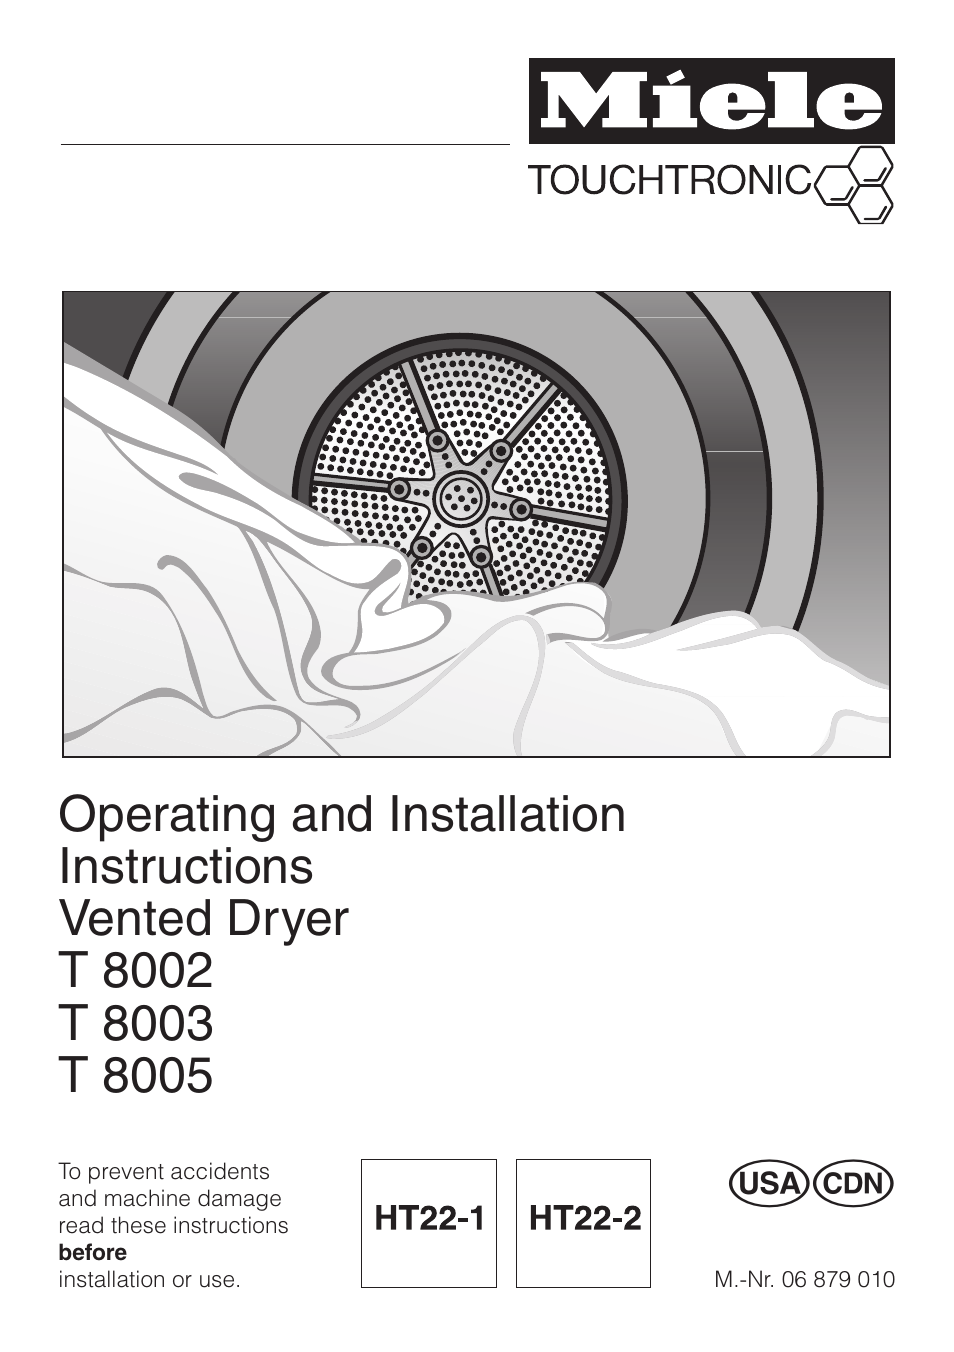 miele t8003 user manual 40 pages also for t8002 t8005 rh manualsdir com miele washer dryer troubleshooting miele washer dryer user manual